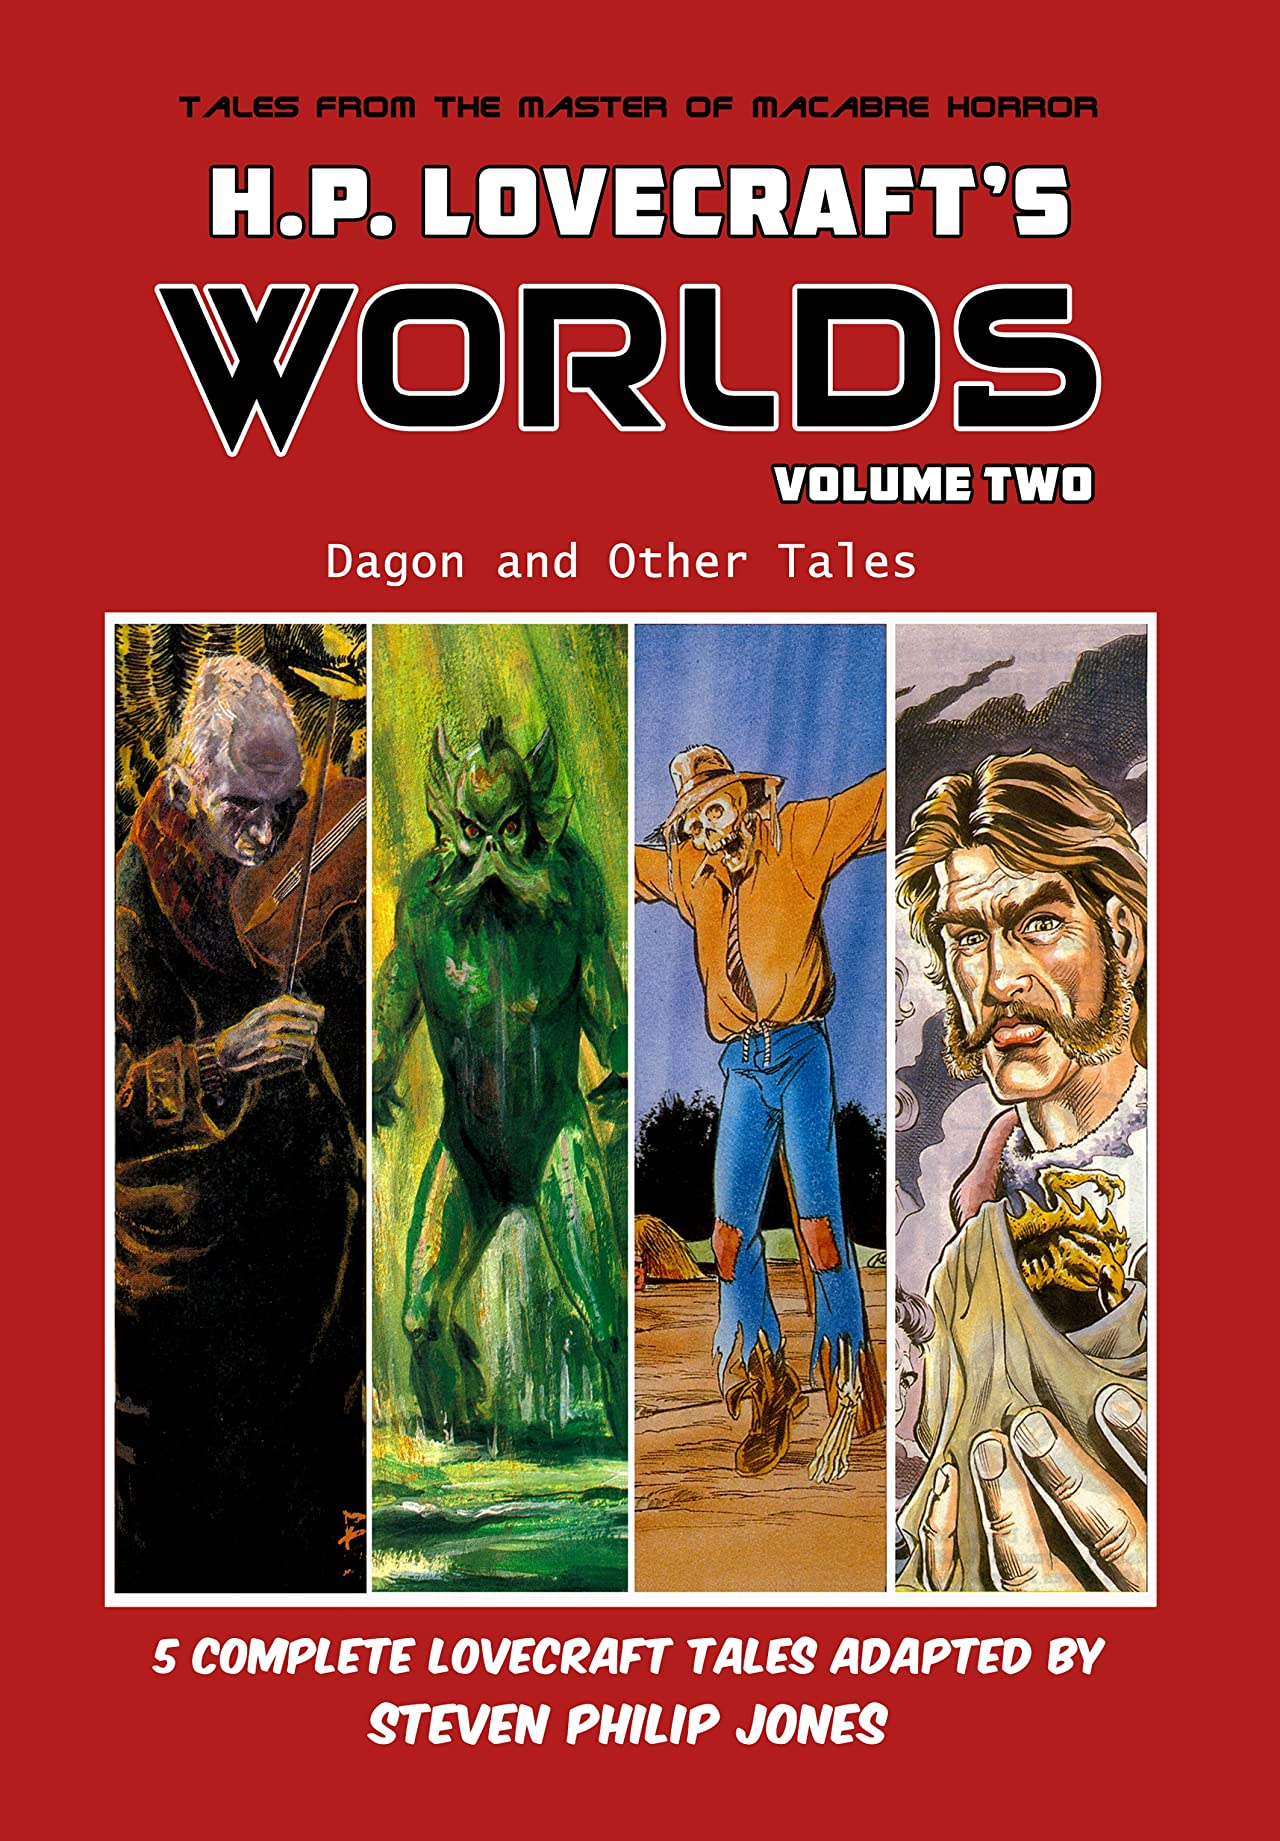 H.P. Lovecraft's Worlds: Dagon and Other Tales Vol. 2